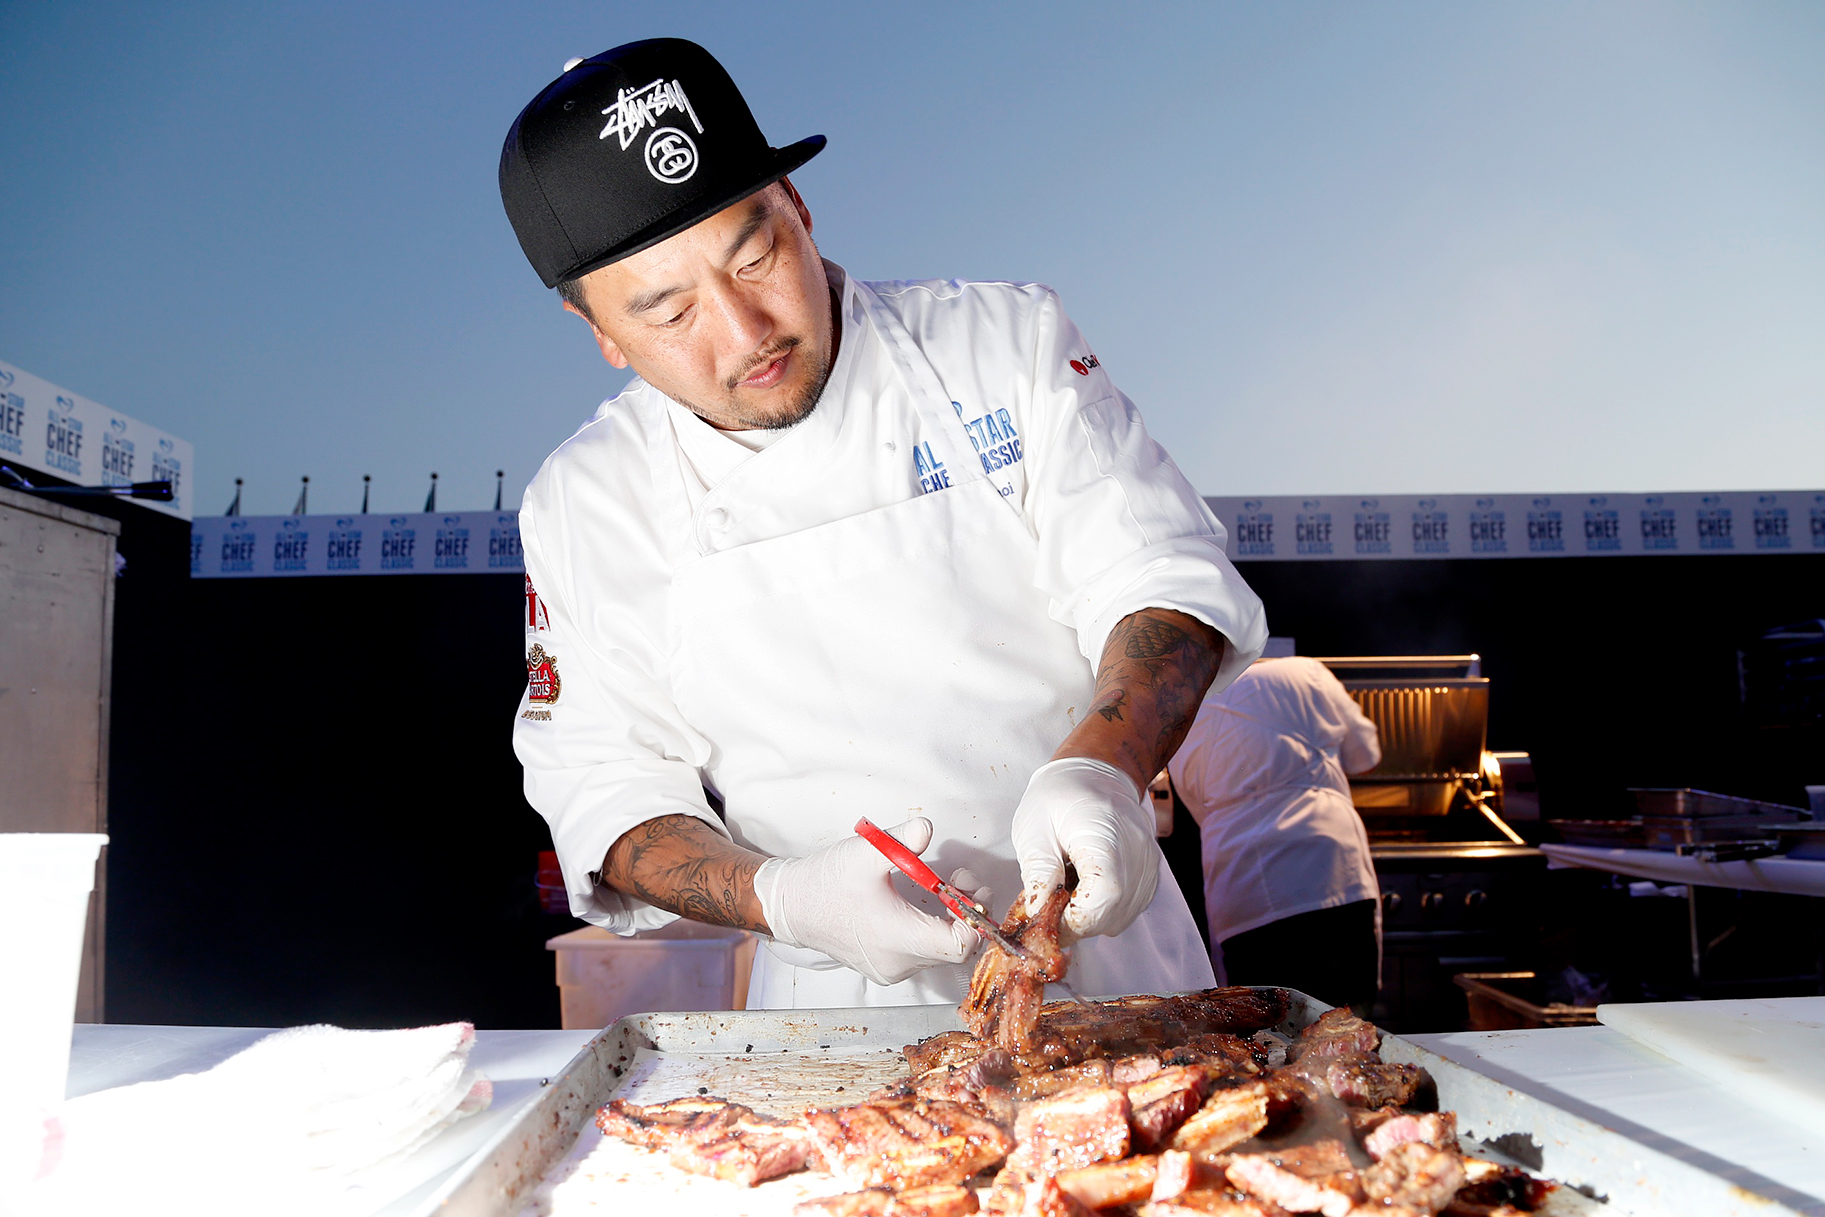 jet-set-feast-chef-roy-choi.jpg